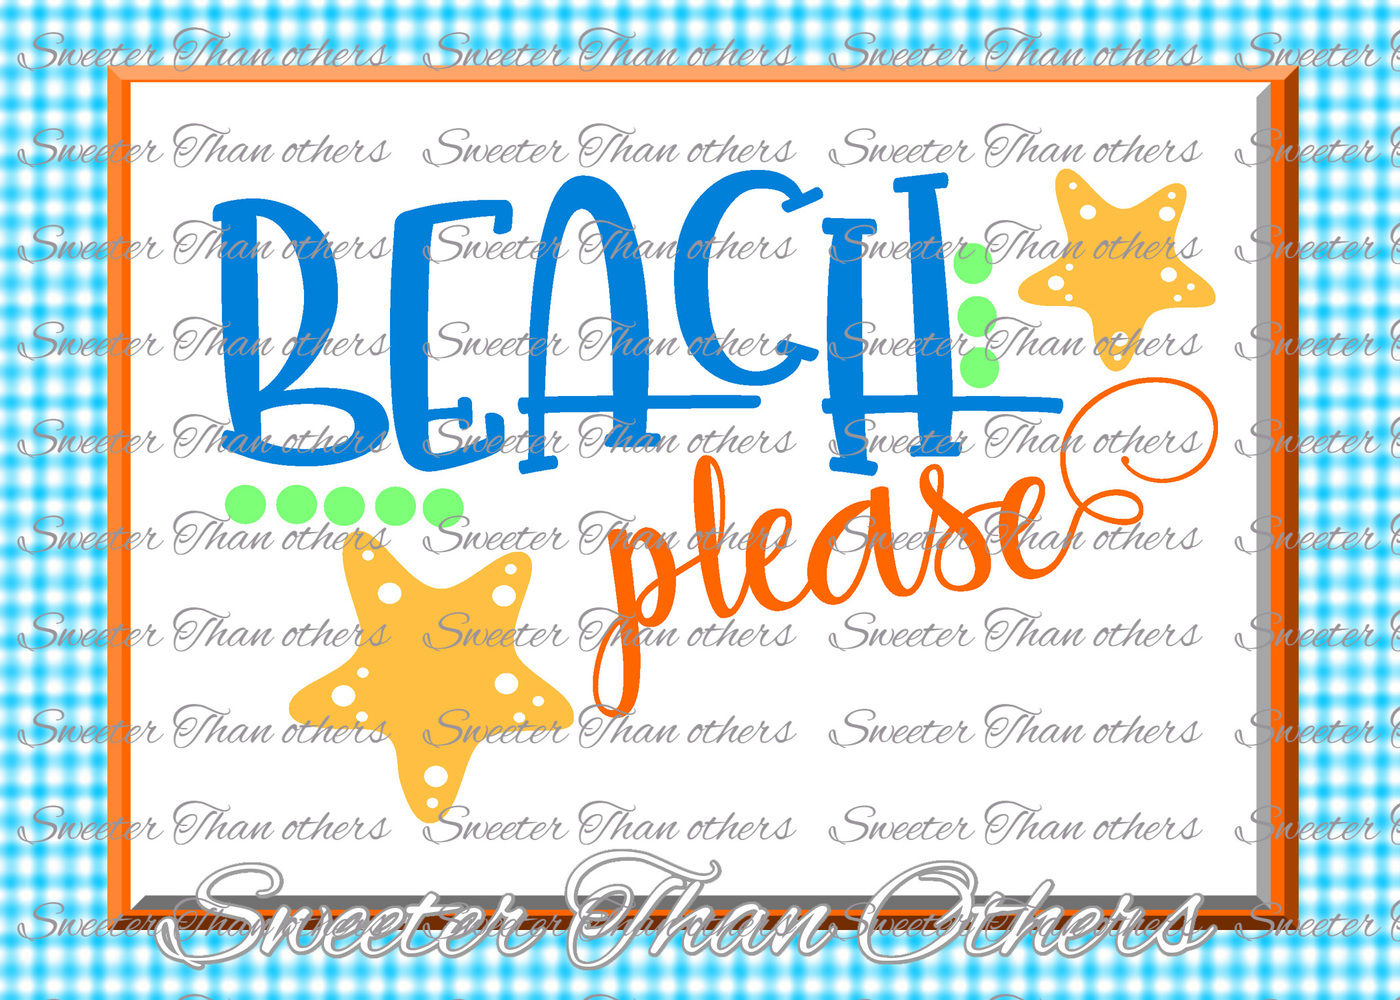 beach please svg,beach svg,png,jpg,dxf,funny summer svg file,vacation svg,summer shirt design,silhouette cricut cut file,free commercial use